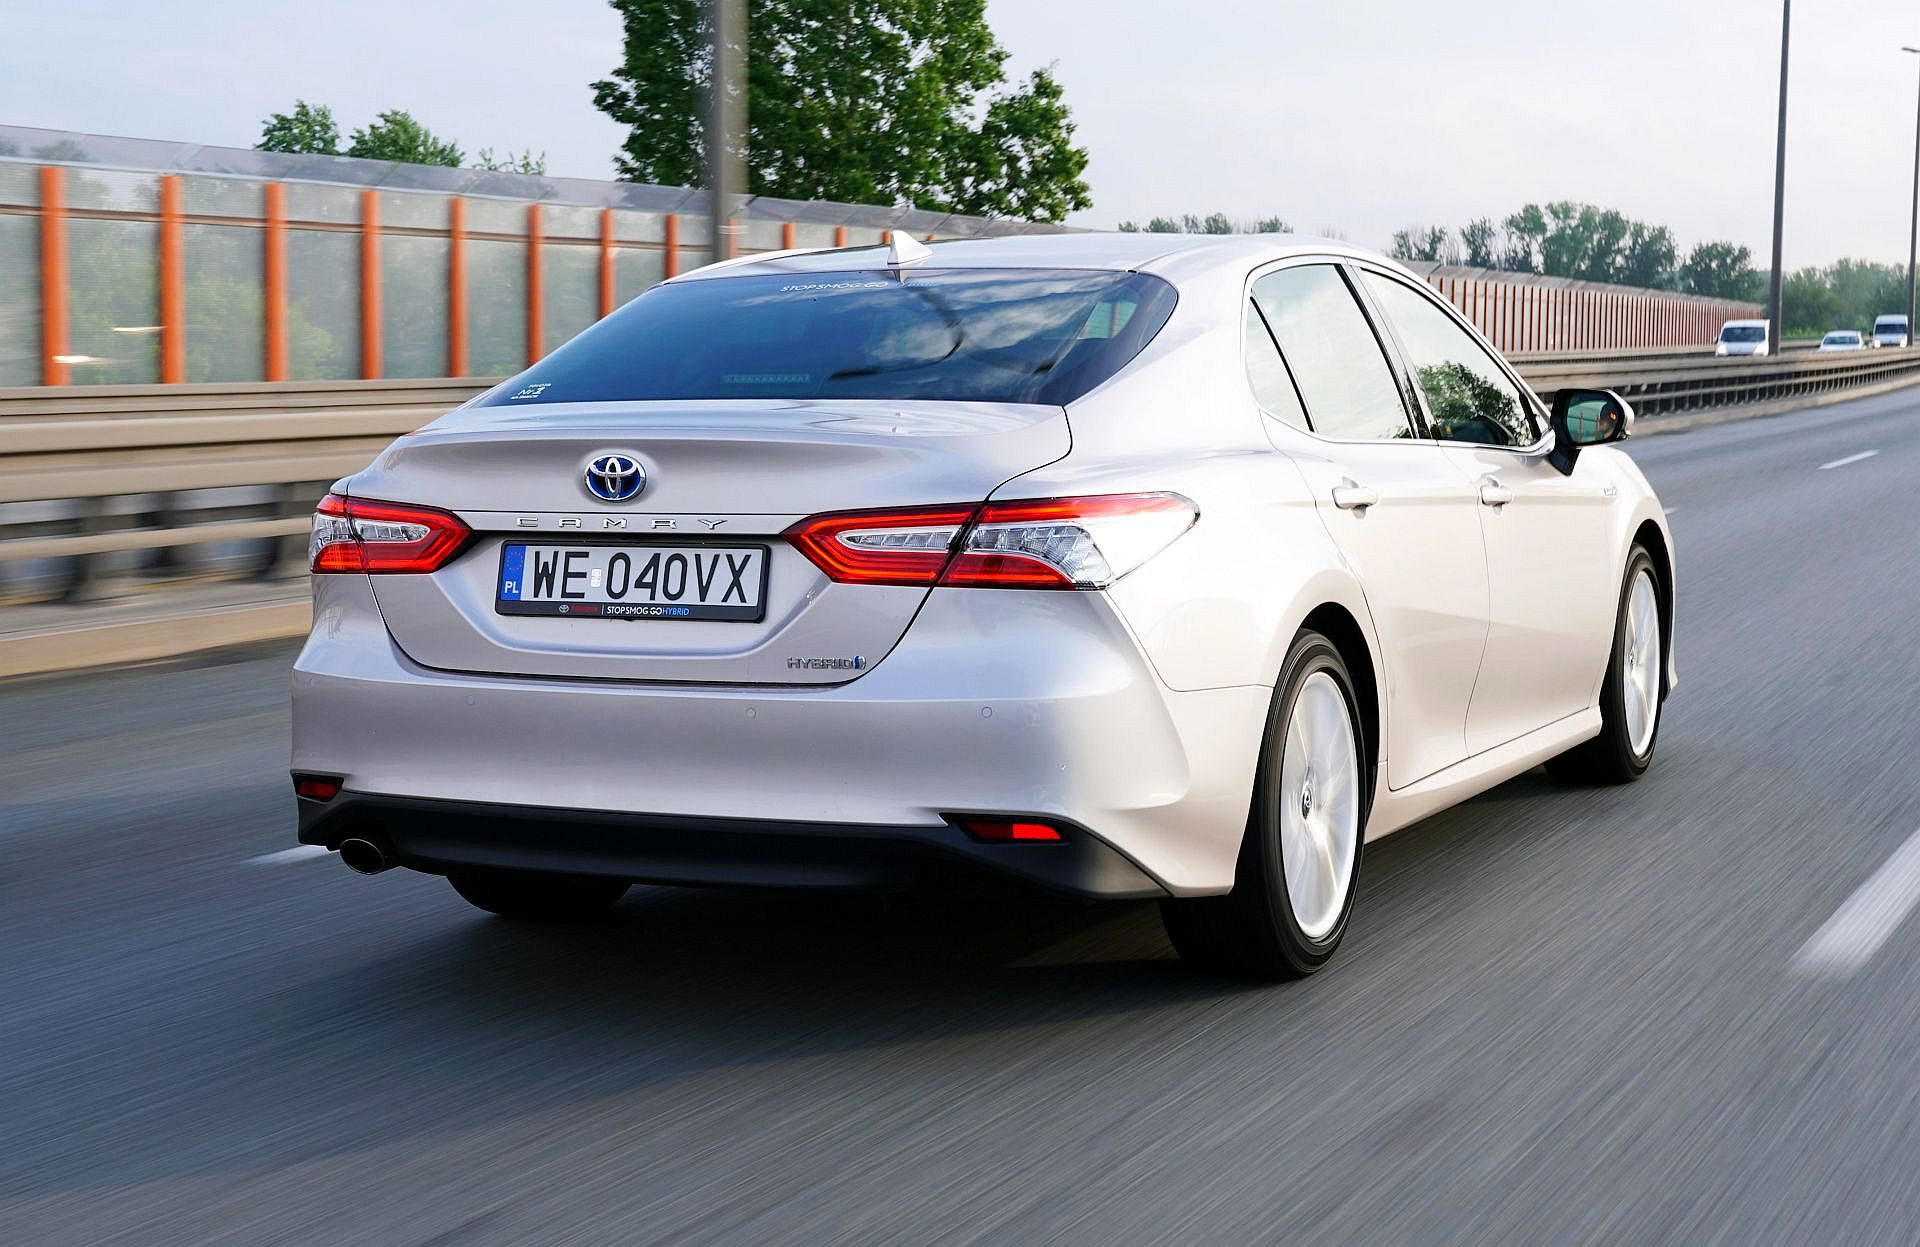 TOYOTA Camry VIII Hybrid Executive 2.5 Dynamic Force 218KM AT e-CVT FWD WE040VX 05-2019